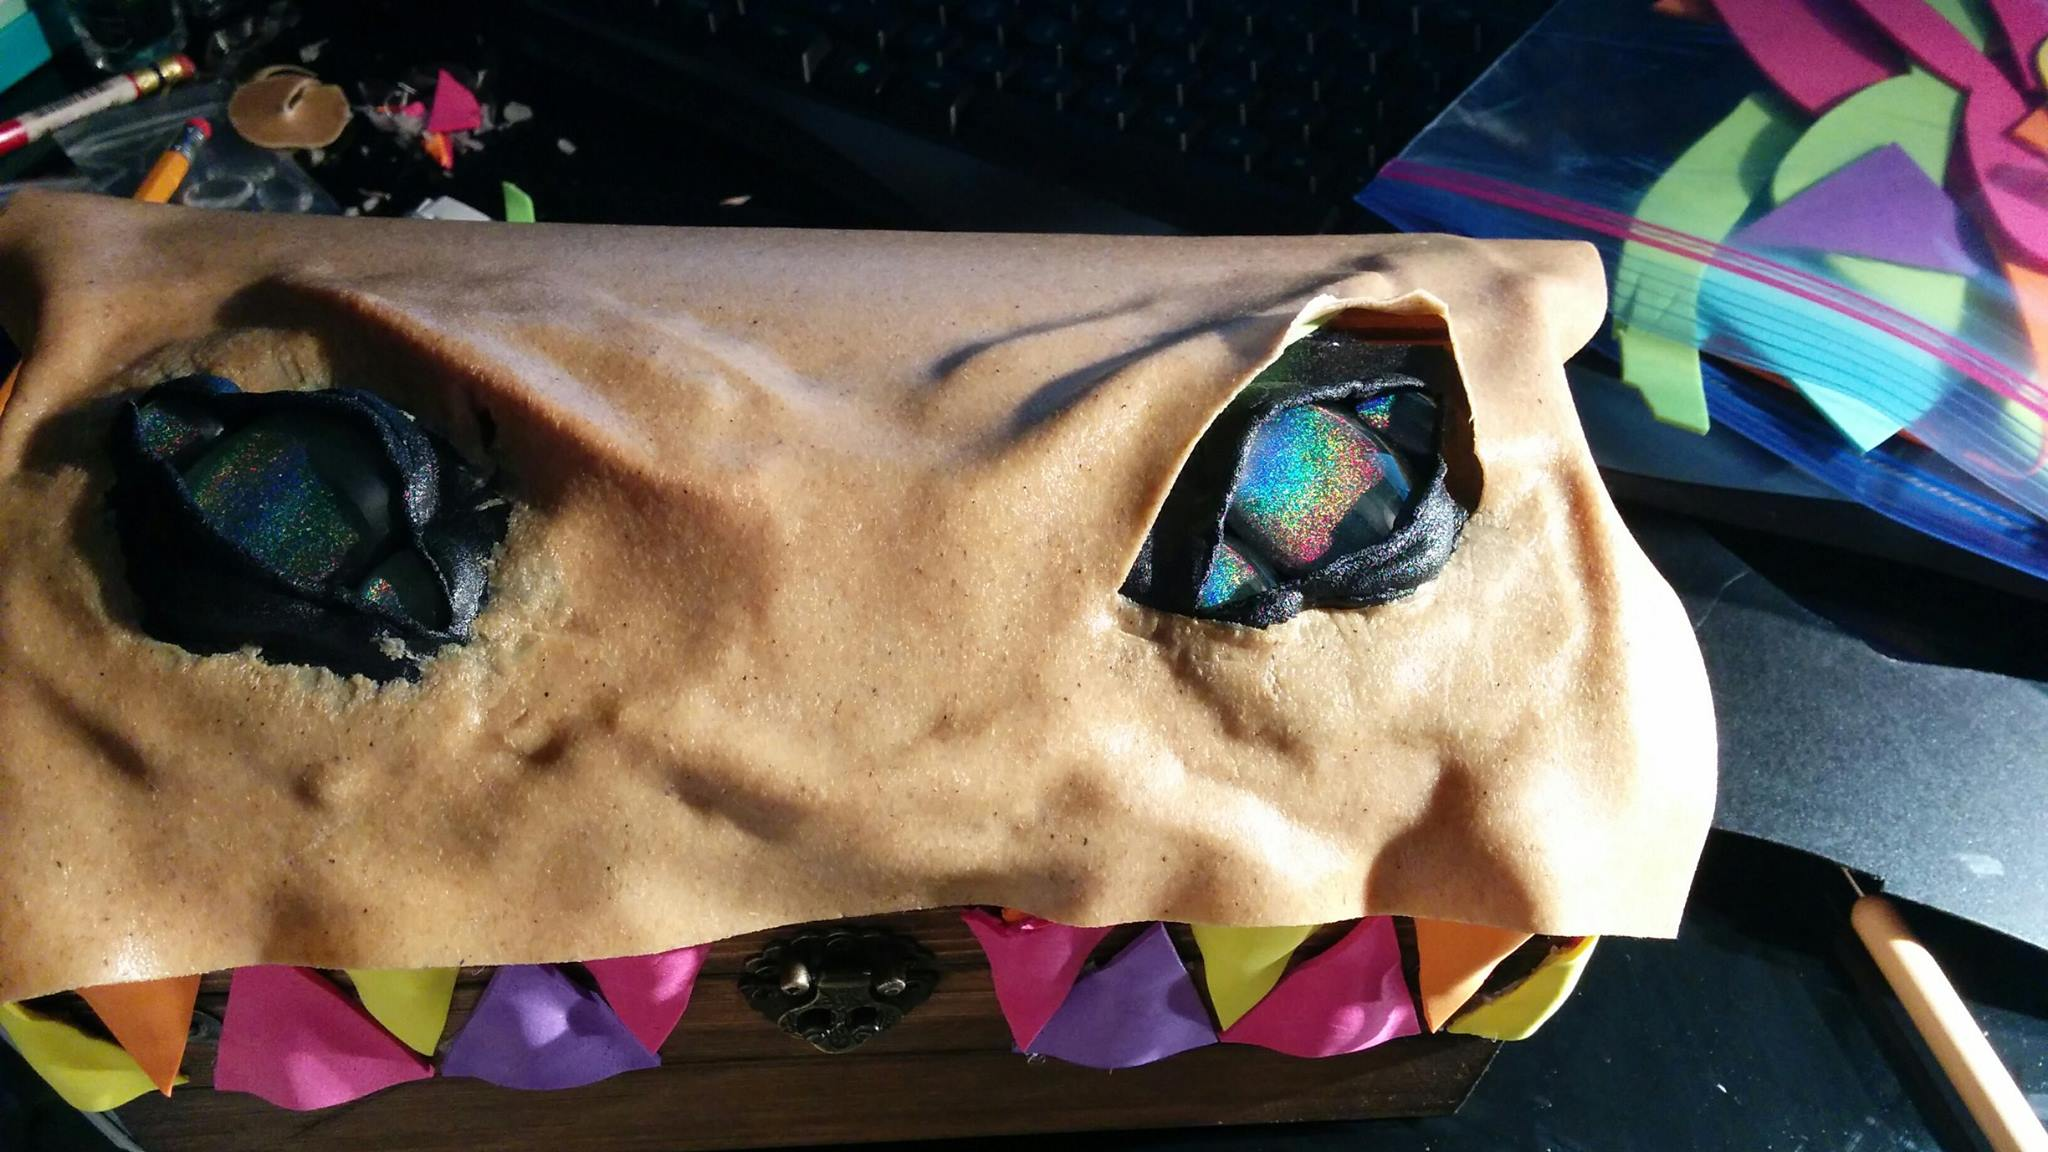 I placed some more foam on the box where I wanted features to pop out, and then covered in another sheet of worbla, leaving holes for the eyes to come through.  Instead of worbla, this could also work with clay or even paper mache!